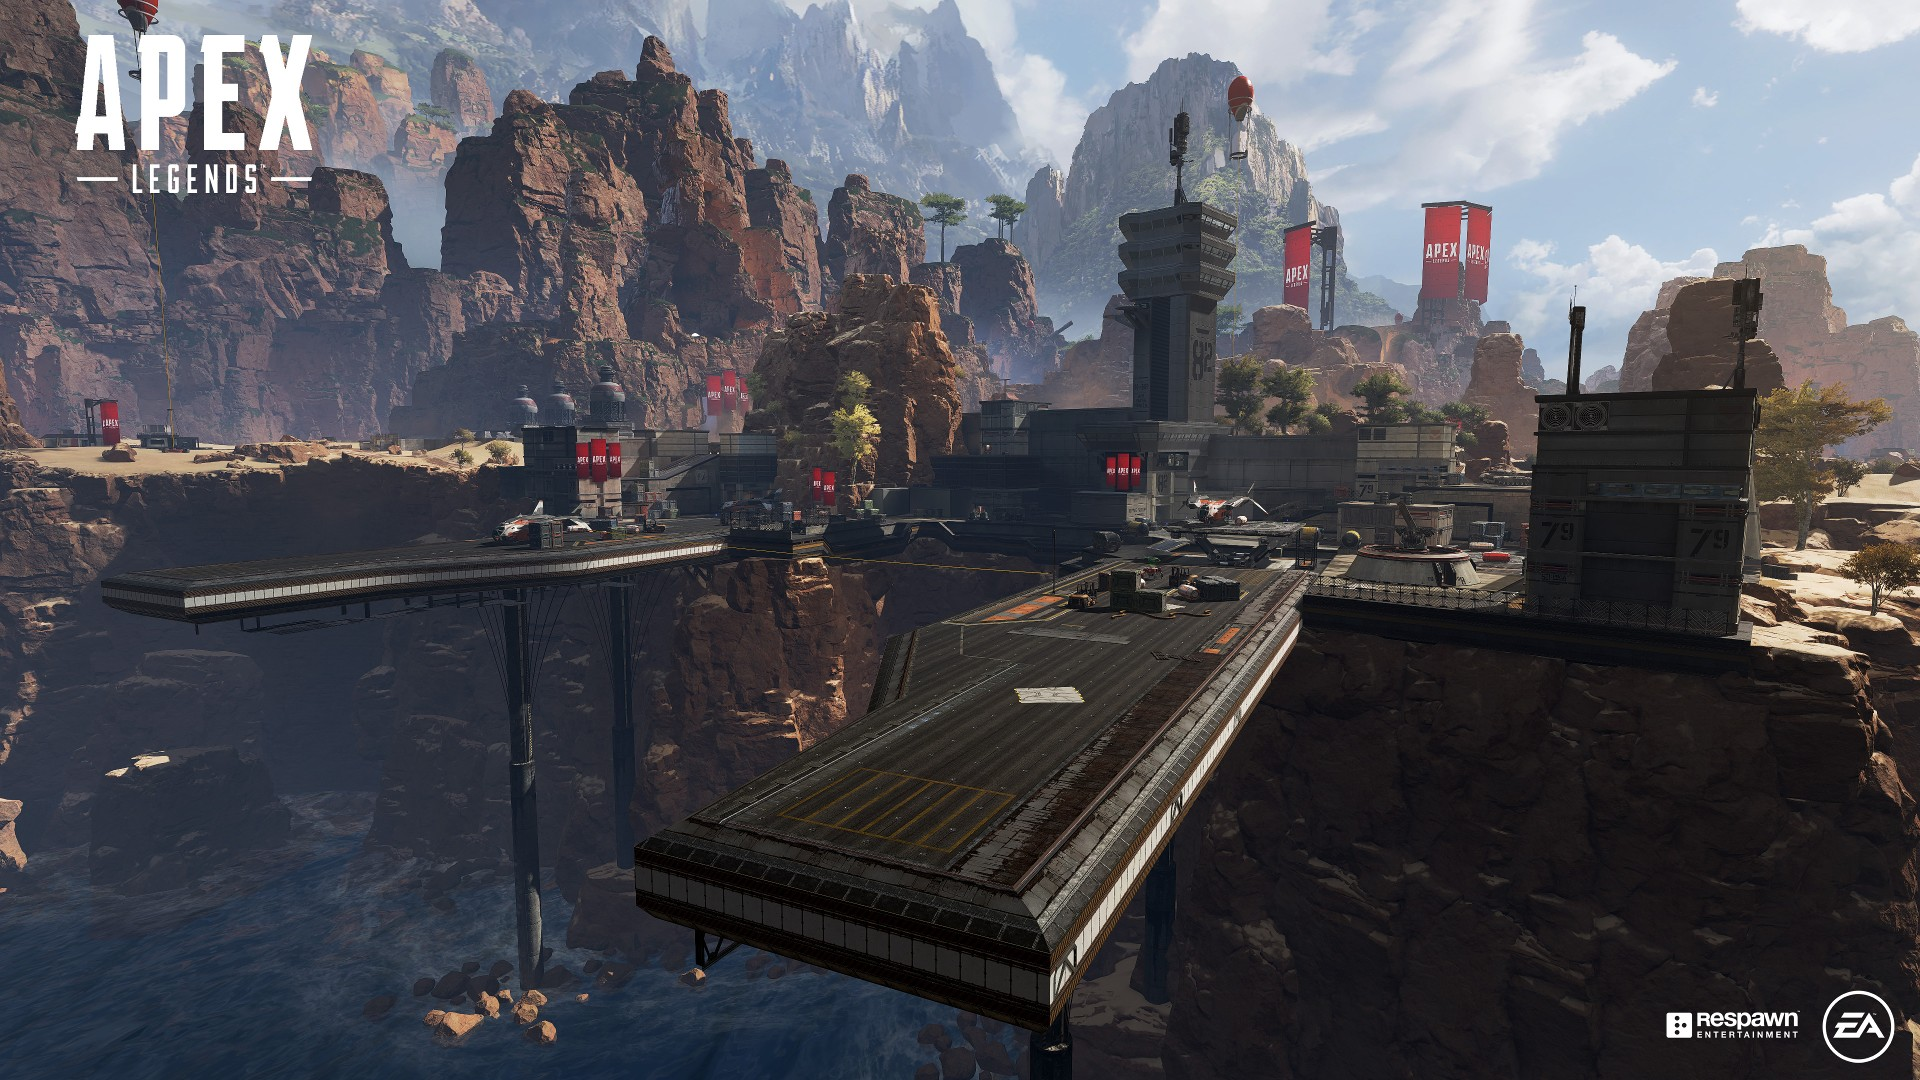 Apex Legends: Founders Pack [5 Years Guarantee] + Gift 2019